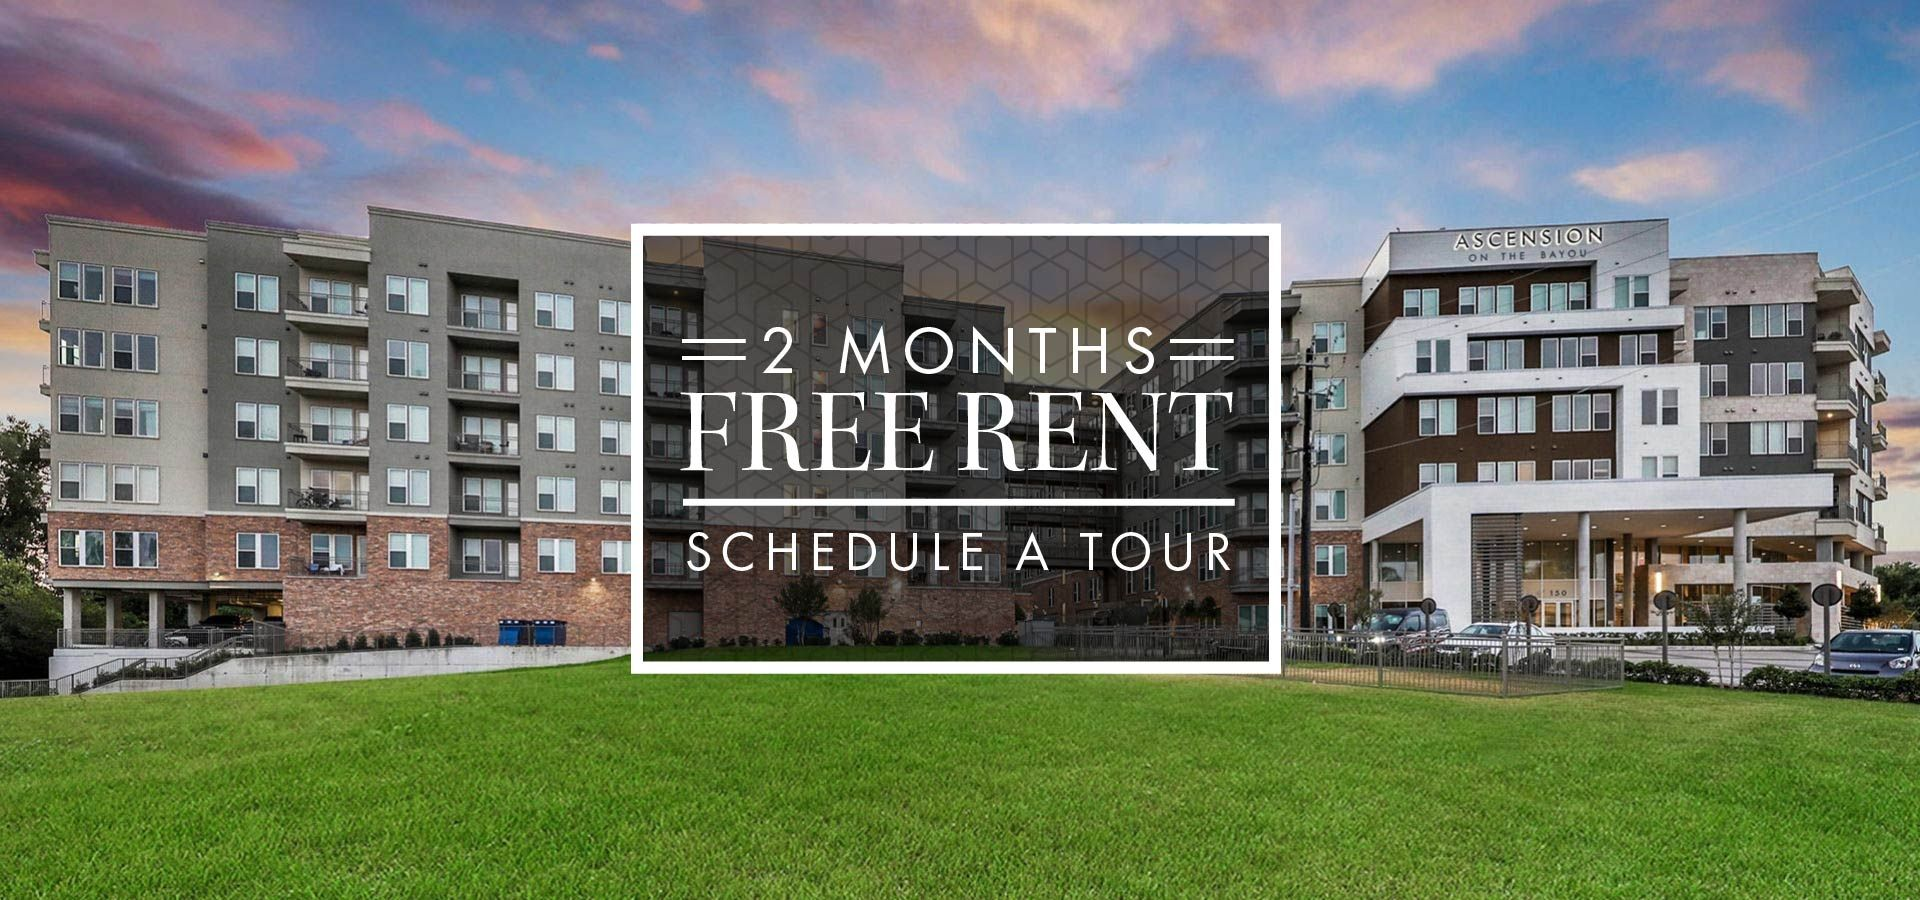 2 Months FREE RENT - Schedule a Tour